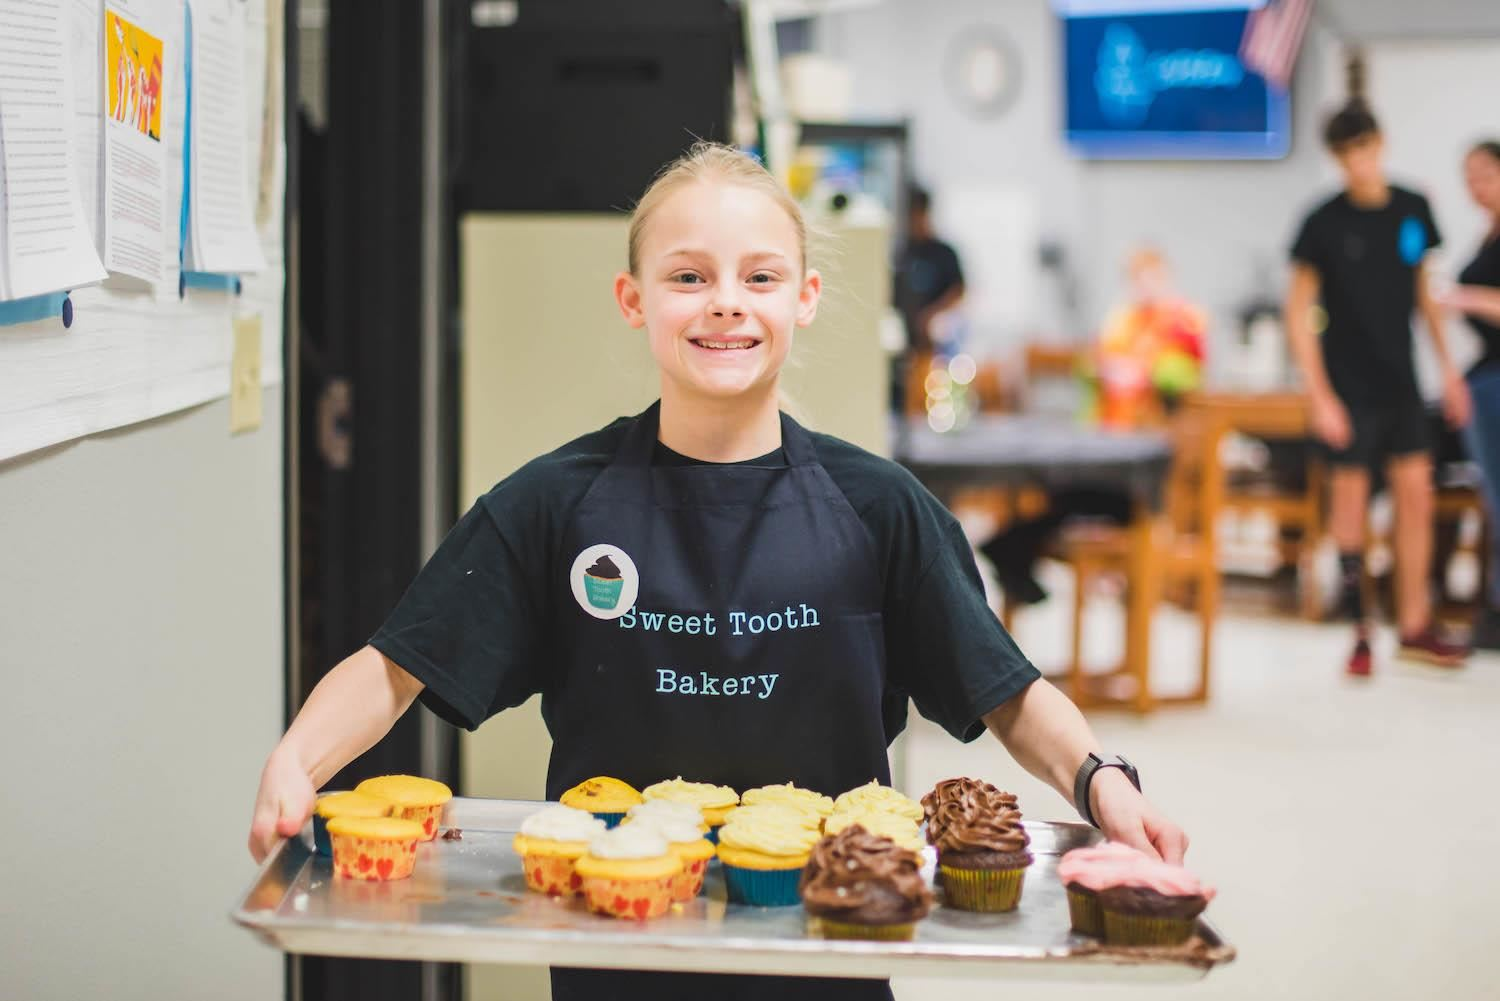 Student serves cupcakes on large pan